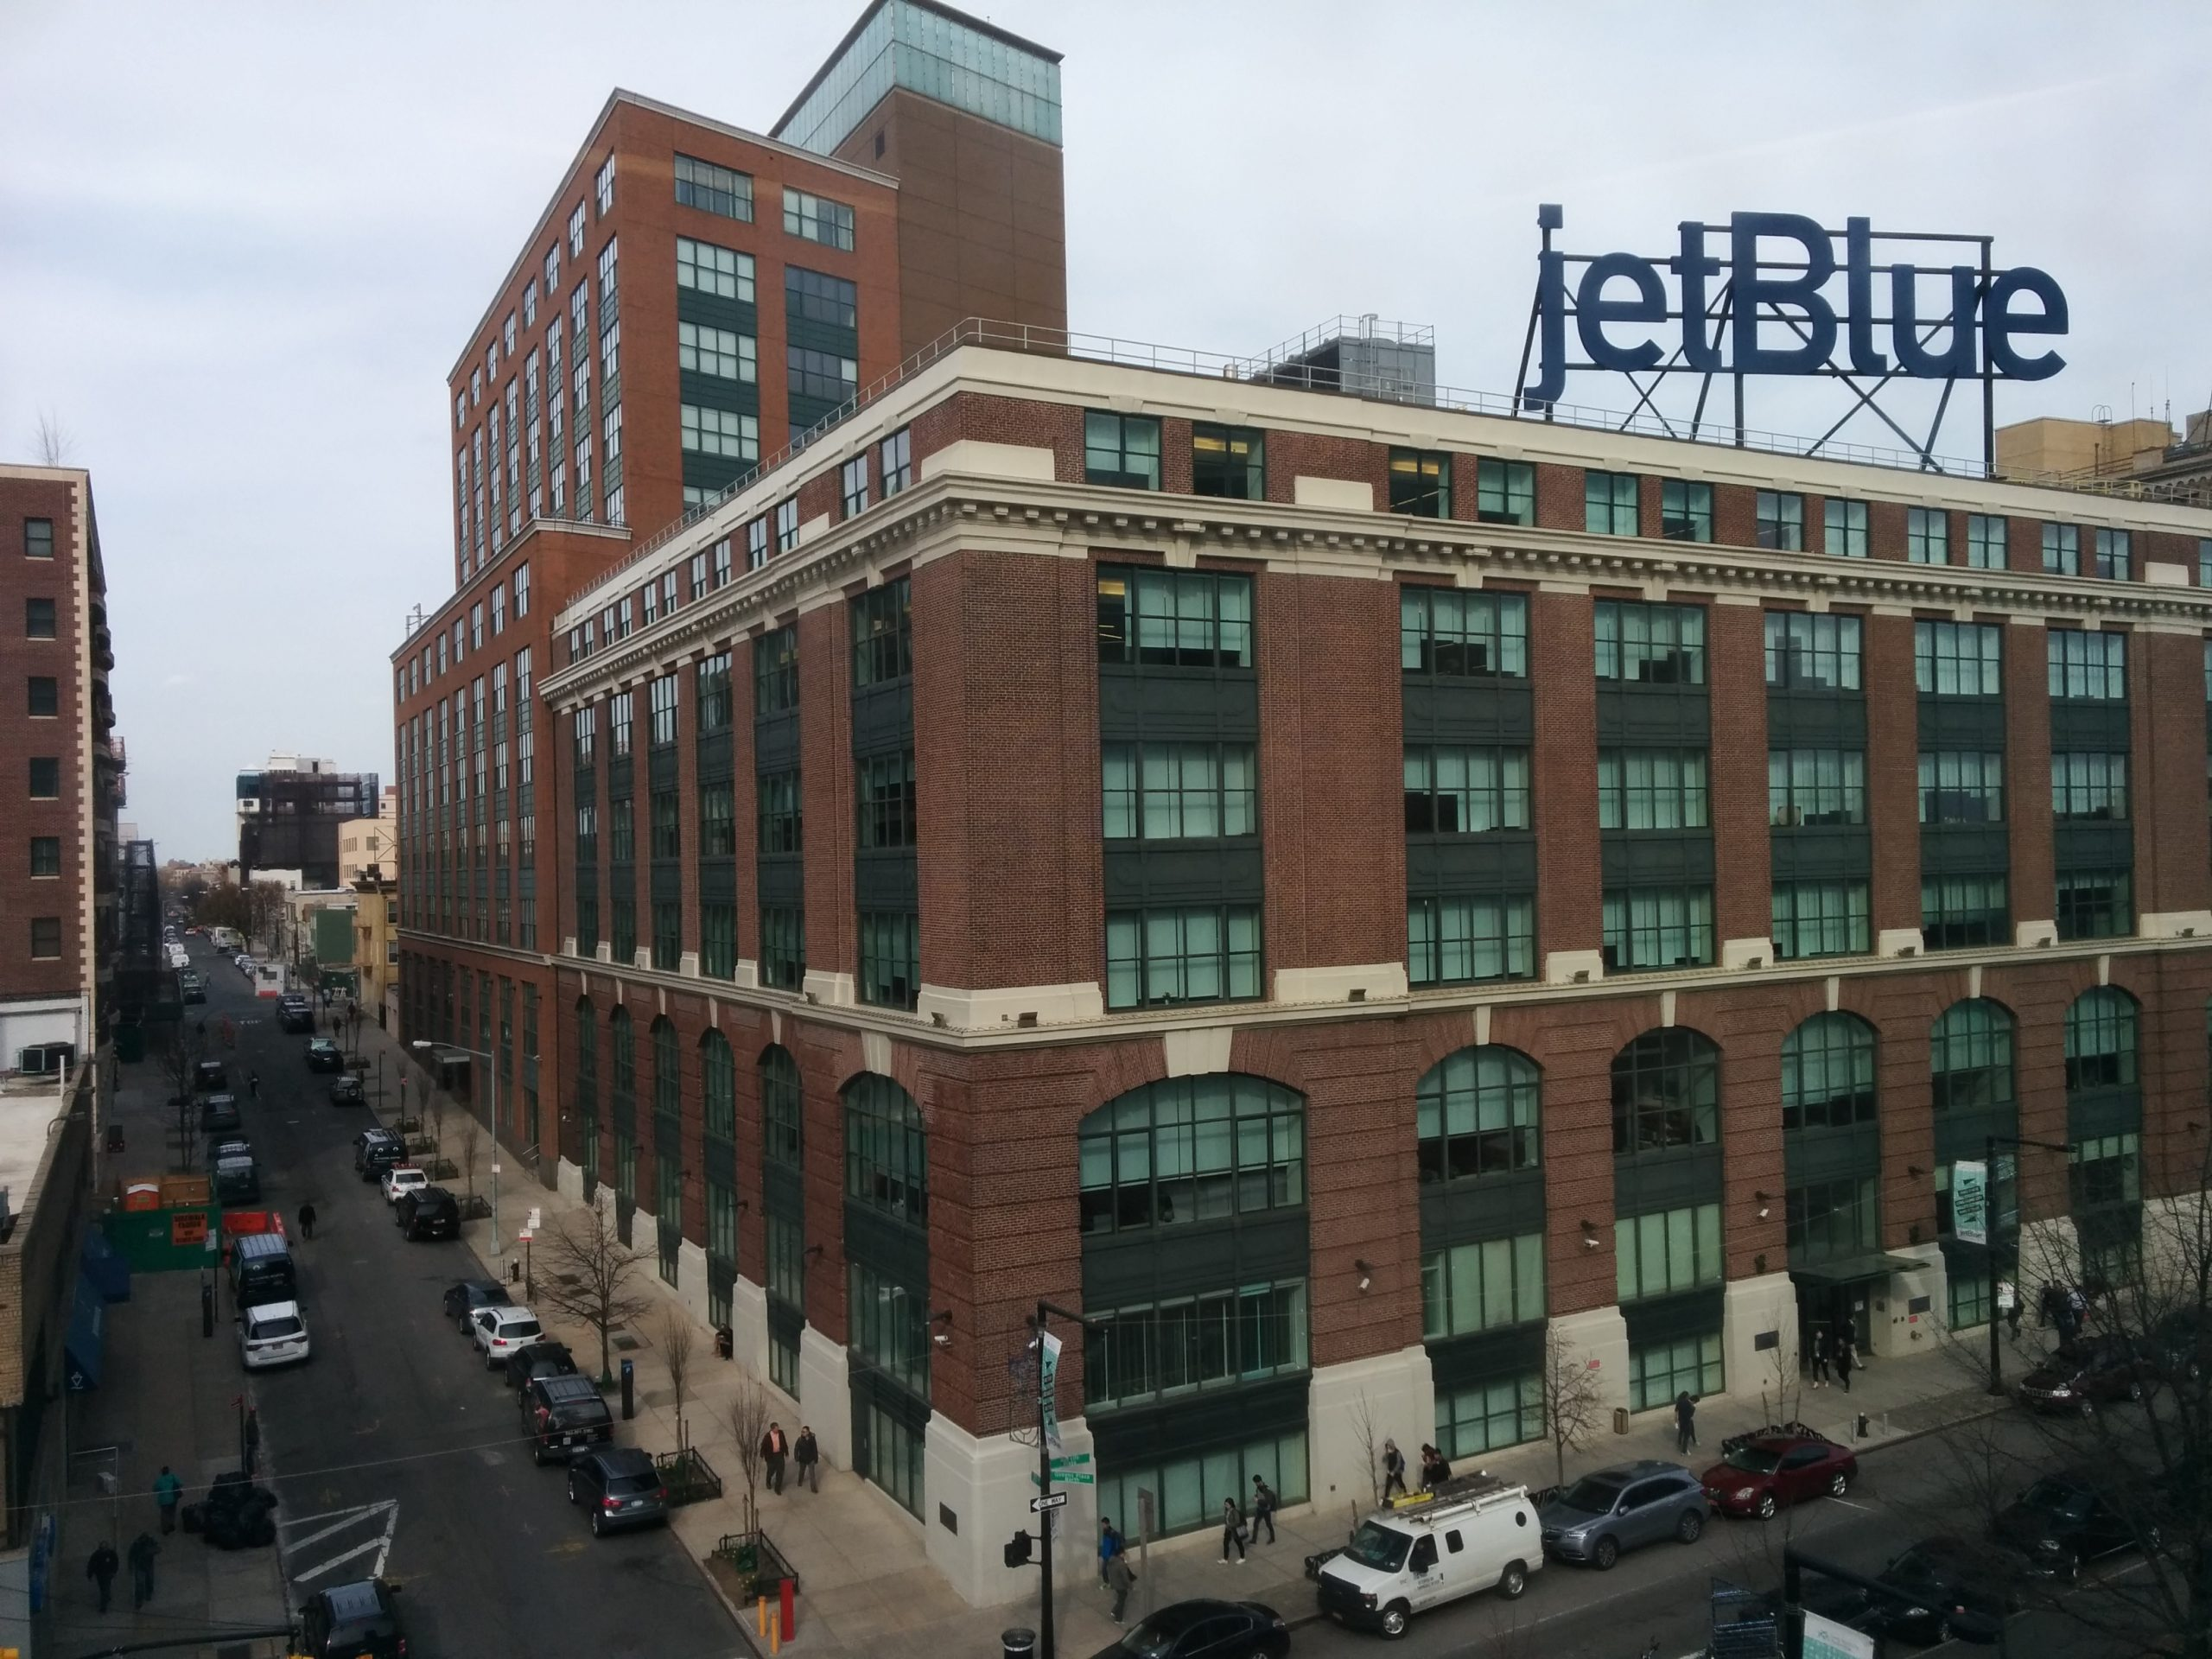 JetBlue to host next IATA Annual General Meeting in Boston